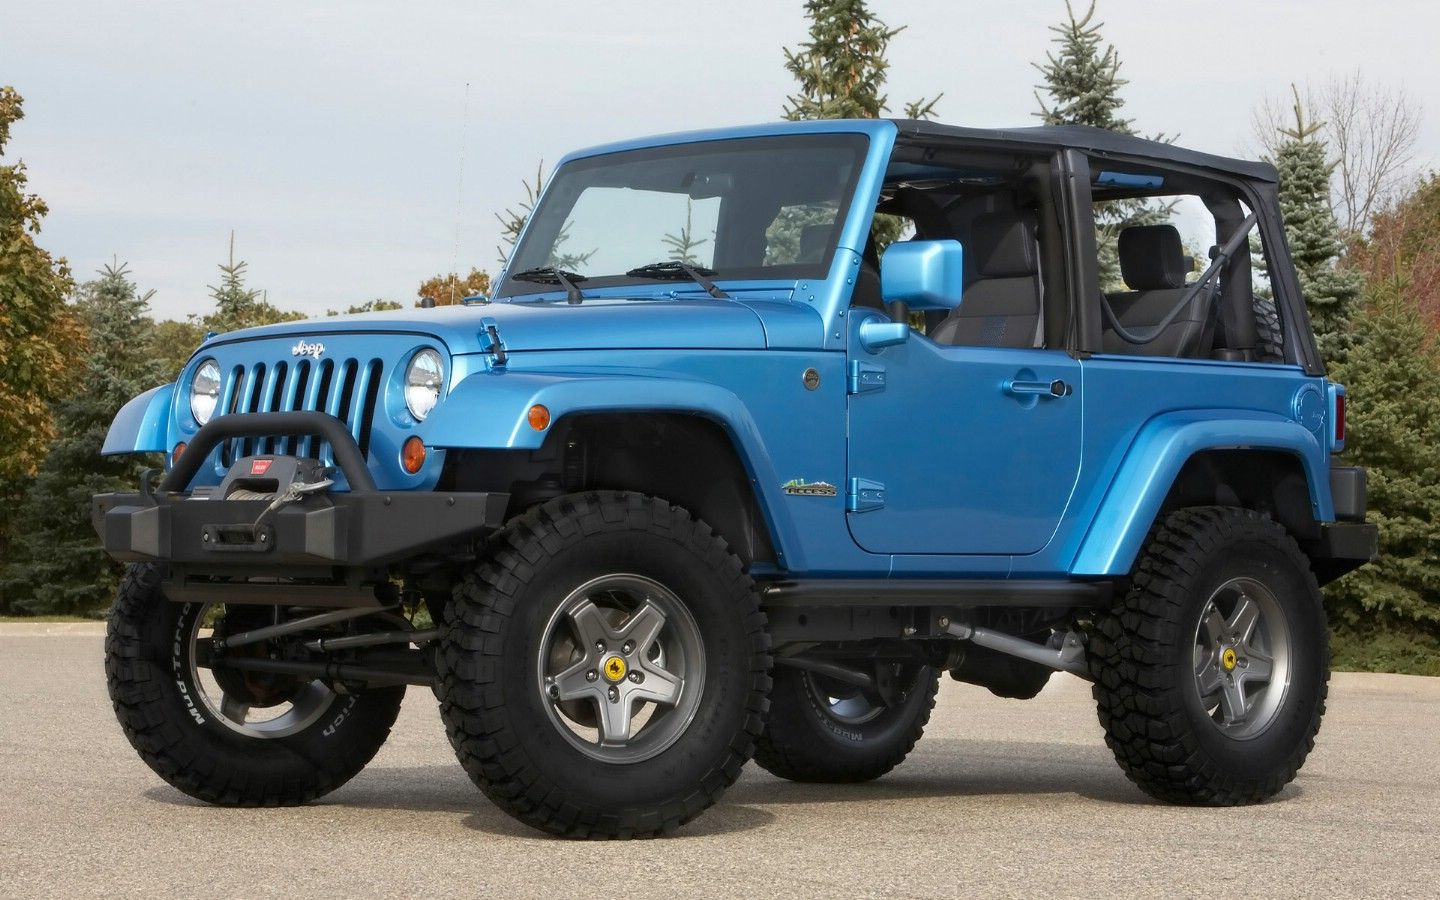 2015 Hummer Jeep That Looks LikeA 必应 Images Jeep